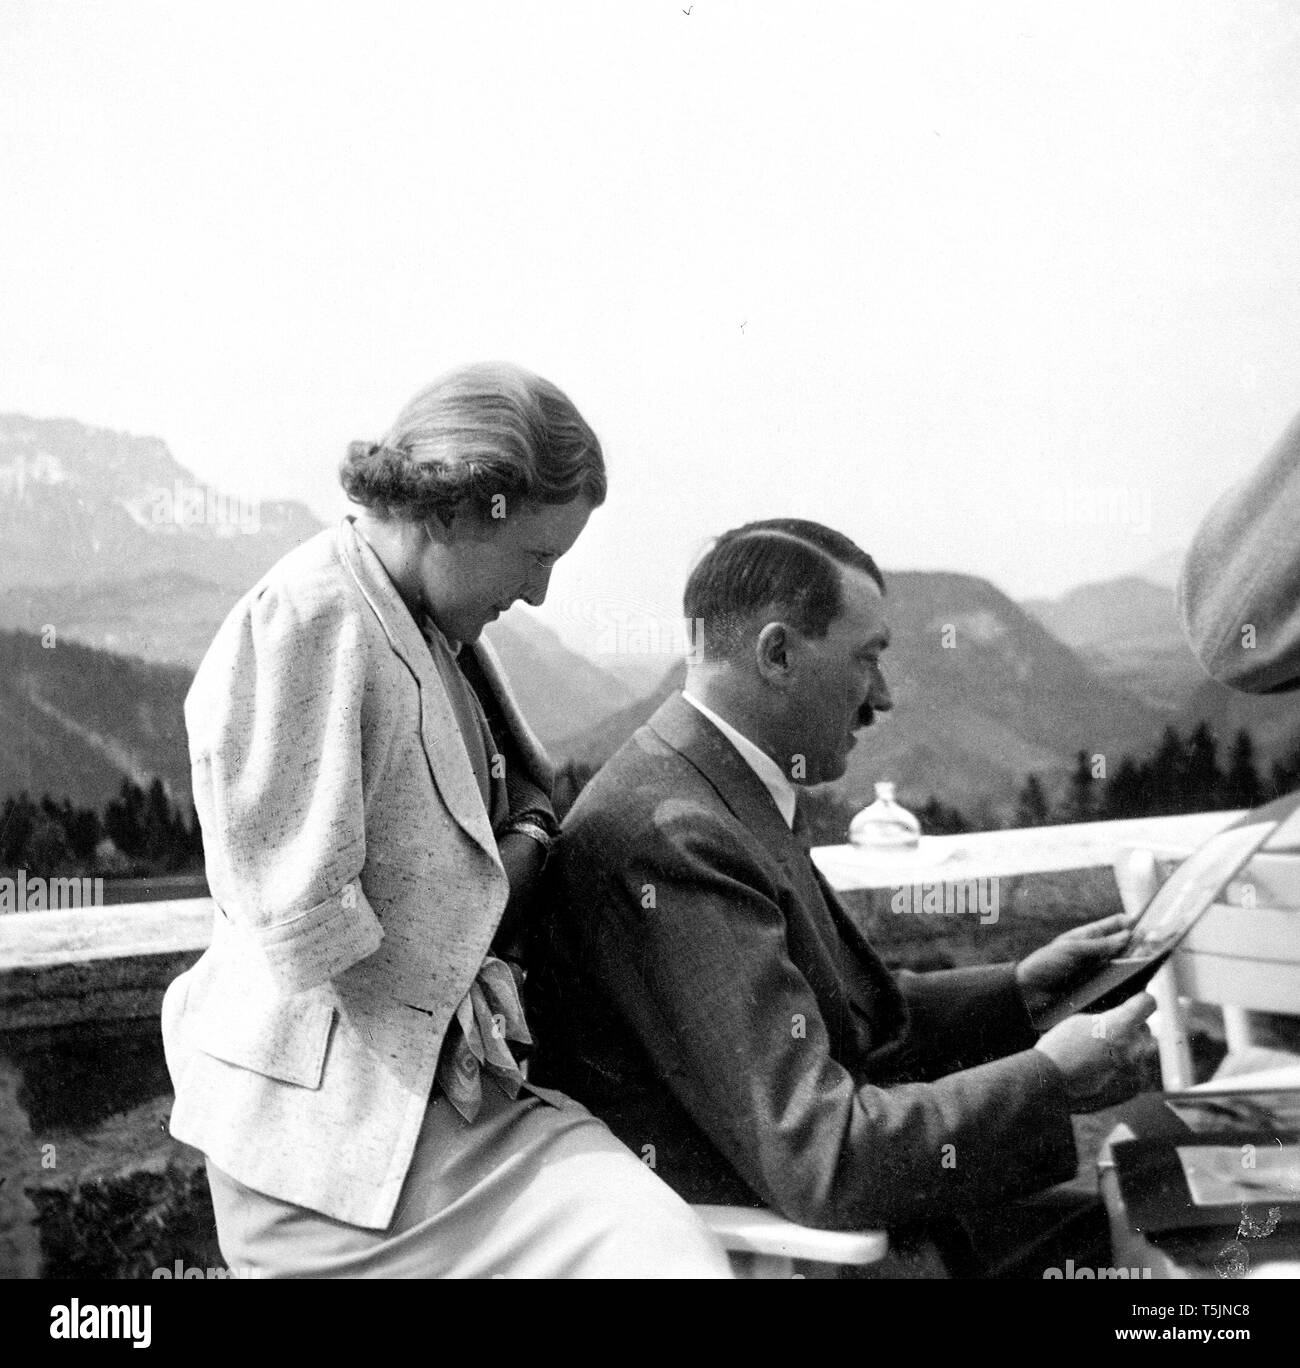 Eva Braun Collection (album 3) - Candid photo of German Nazi leader Adolf Hitler ca. late 1930s or early 1940s - Stock Image